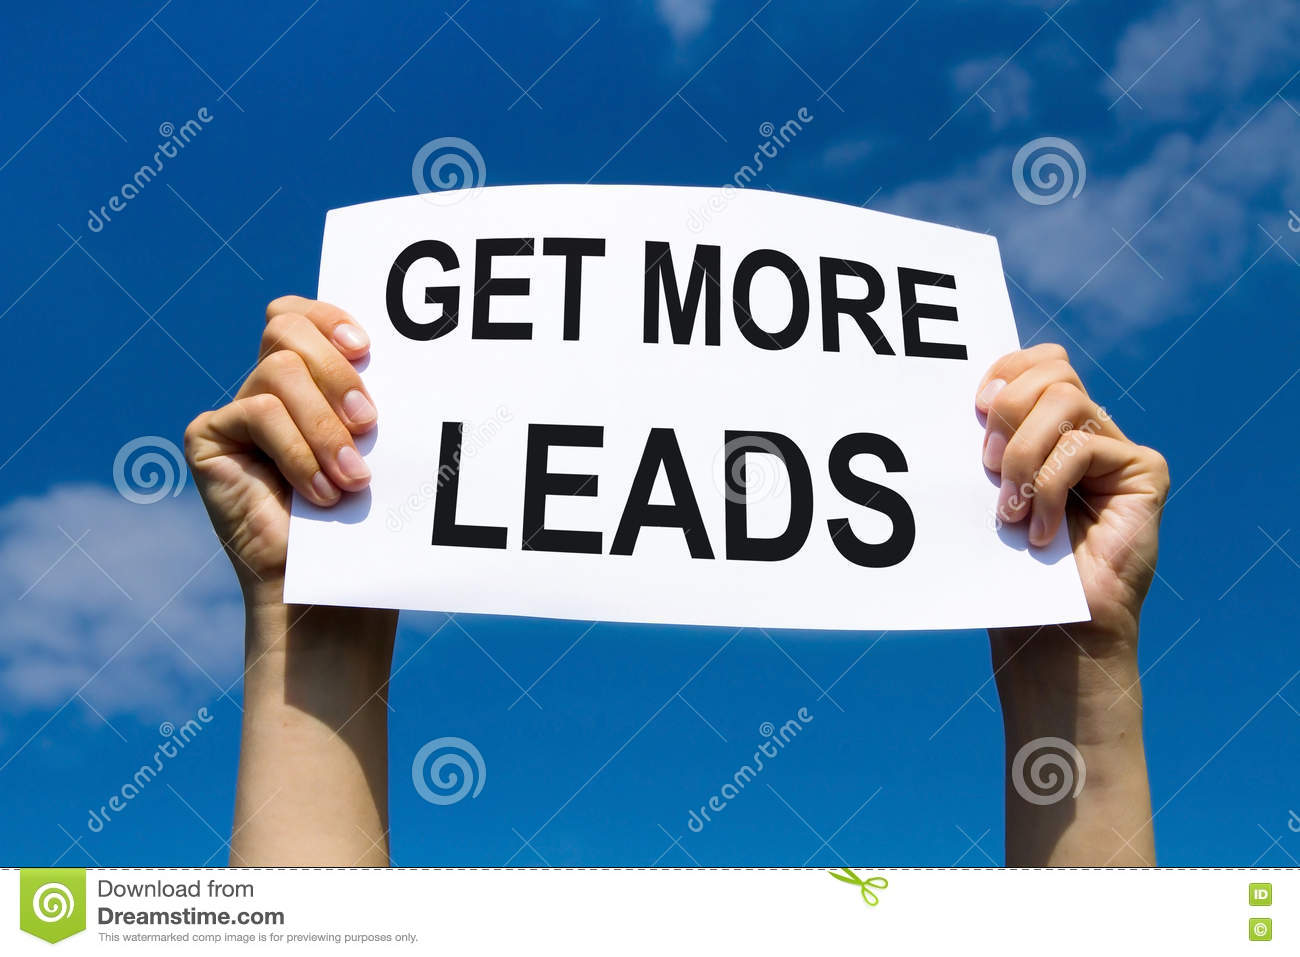 Get more leads, concept